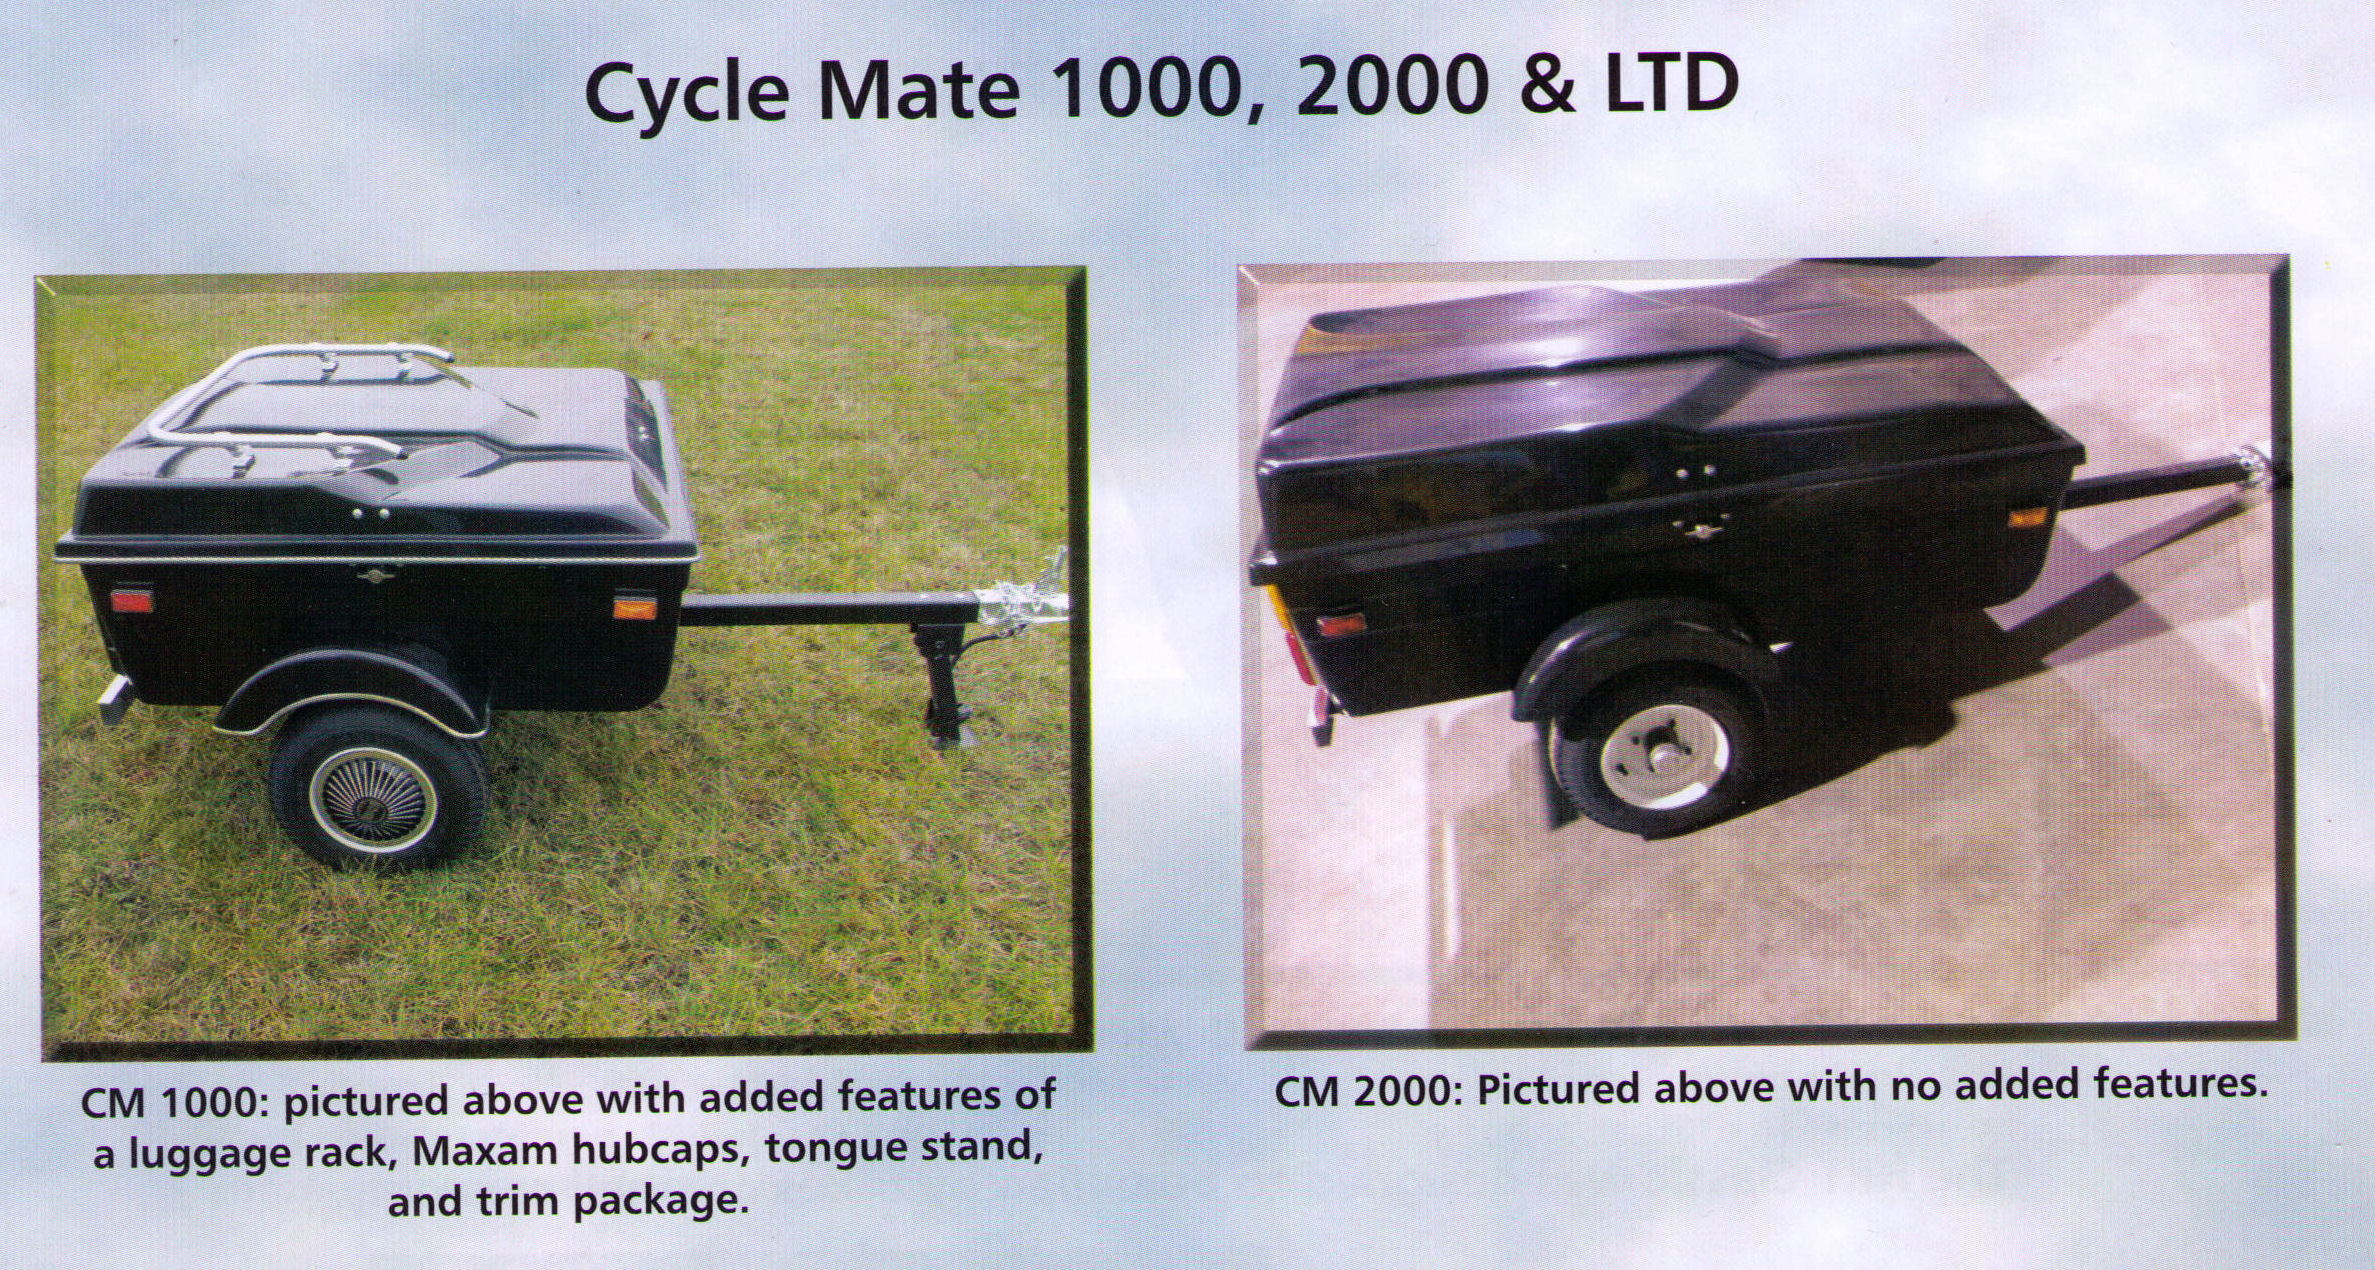 Cycle Mate 1000, 2000, And LTD Model Motorcycle Towable Cargo Trailers